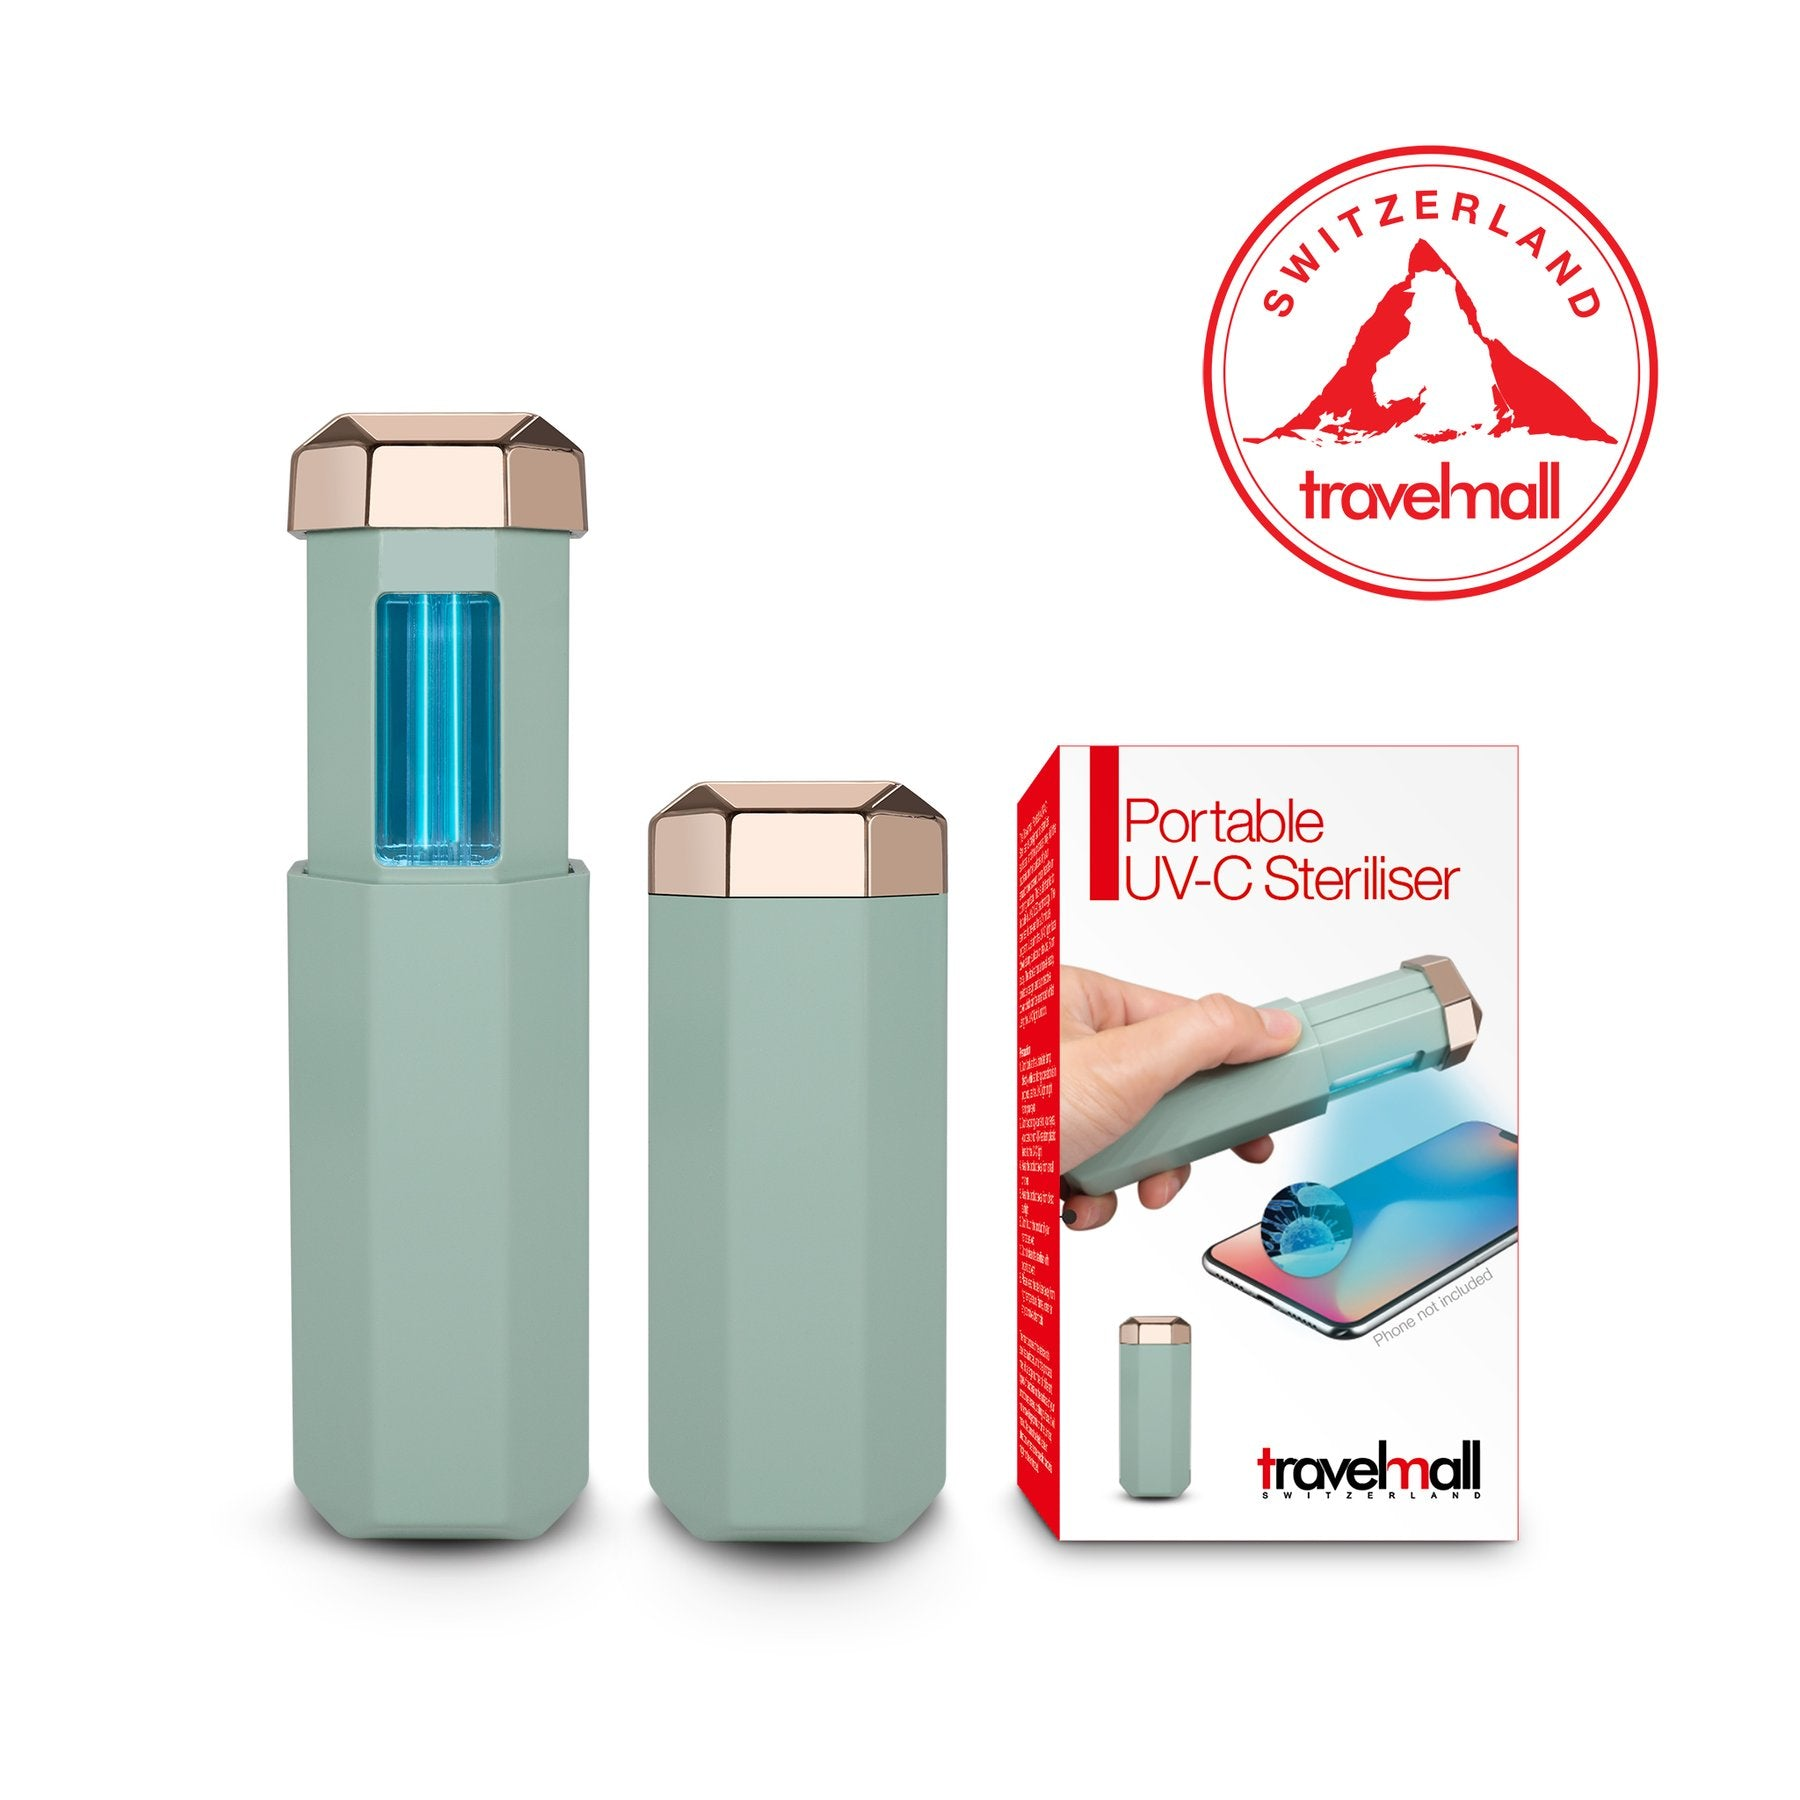 TravelMall Switzerland Portable UVC Steriliser